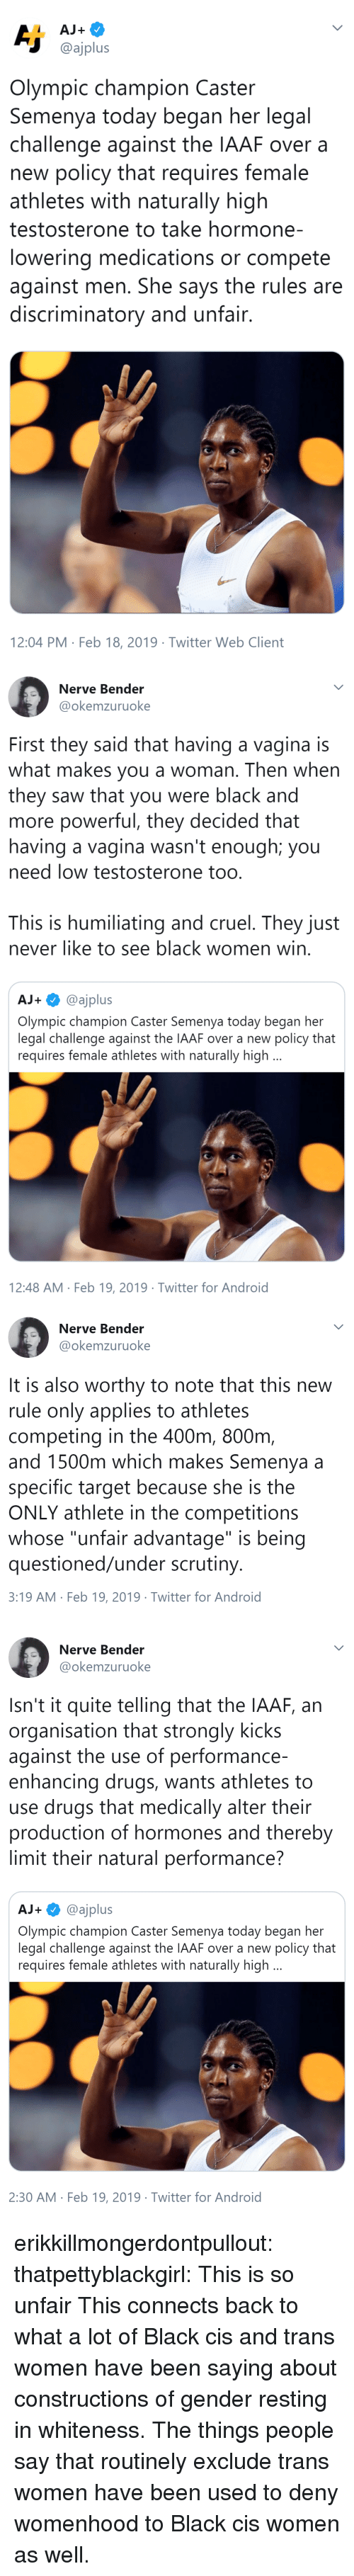 "female athletes: @ajplus  Olympic champion Caster  Semenya today began her legal  challenge against the IAAF over a  new policy that requires female  athletes with naturally high  testosterone to take hormone-  lowering medications or compete  against men. She says the rules are  discriminatory and unfair  12:04 PM Feb 18, 2019 Twitter Web Client   Nerve Bender  @okemzuruoke  First they said that having a vagina is  what makes you a woman. Then when  they saw that you were black and  more powerful, they decided that  having a vagina wasn't enough; you  need low testosterone too  This is humiliating and cruel. They just  never like to see black women win  AJ+@ajplus  Olympic champion Caster Semenya today began her  legal challenge against the IAAF over a new policy that  requires female athletes with naturally high  12:48 AM Feb 19, 2019 Twitter for Android   Nerve Bender  @okemzuruoke  It is also worthy to note that this new  rule only applies to athletes  competing in the 400m, 800nm  and 1500m which makes Semenya a  specific target because she is the  ONLY athlete in the competitions  whose ""unfair advantage"" is being  questioned/under scrutiny  3:19 AM Feb 19, 2019 Twitter for Android   Nerve Bender  @okemzuruoke  Isn't it quite telling that the IAAF, an  organisation that strongly kicks  against the use of performance-  enhancing drugs, wants athletes to  use drugs that medically alter their  production of hormones and thereby  limit their natural performance?  AJ+@ajplus  Olympic champion Caster Semenya today began her  legal challenge against the IAAF over a new policy that  requires female athletes with naturally high  2:30 AM Feb 19, 2019 Twitter for Android erikkillmongerdontpullout: thatpettyblackgirl:  This is so unfair    This connects back to what a lot of Black cis and trans women have been saying about constructions of gender resting in whiteness. The things people say that routinely exclude trans women have been used to deny womenhood to Black cis women as well."